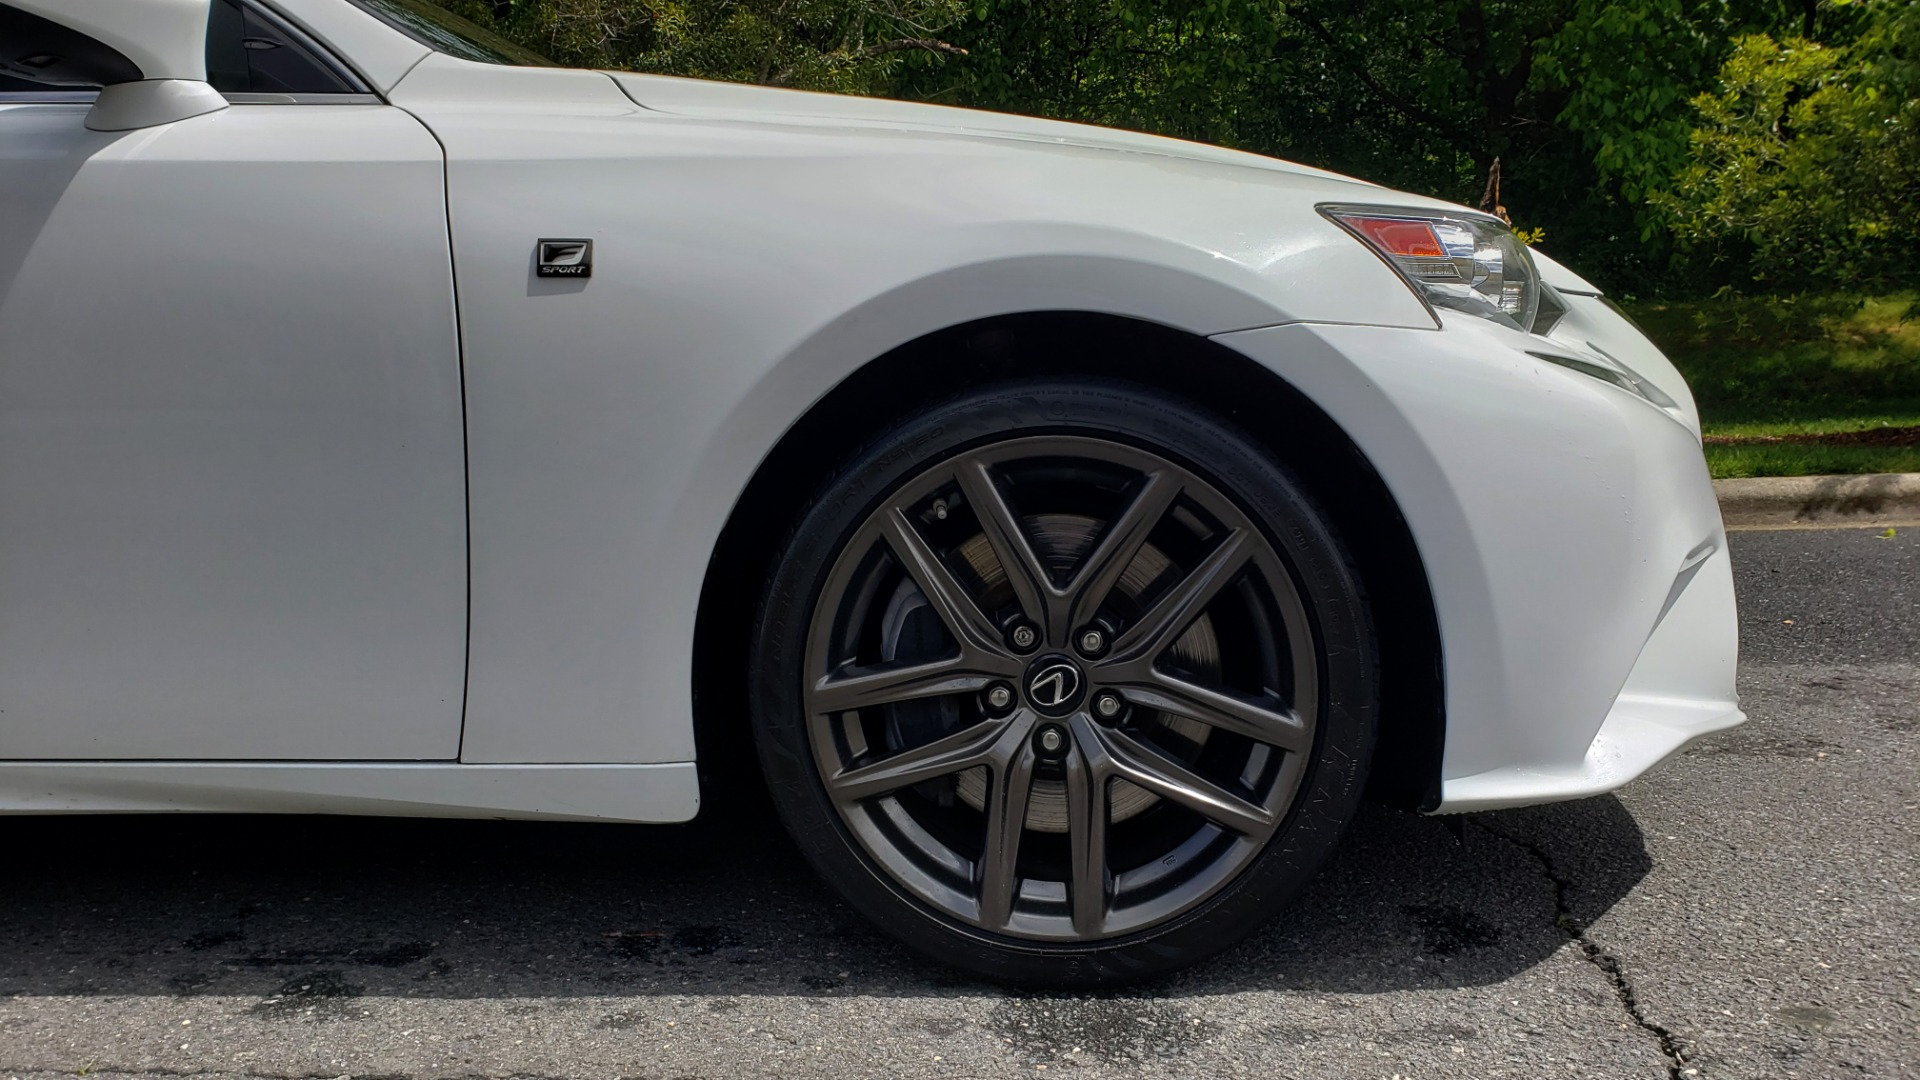 Used 2014 Lexus IS 350 F-SPORT / NAV / SUNROOF / REARVIEW / BSM / MARK LEV SND for sale Sold at Formula Imports in Charlotte NC 28227 81